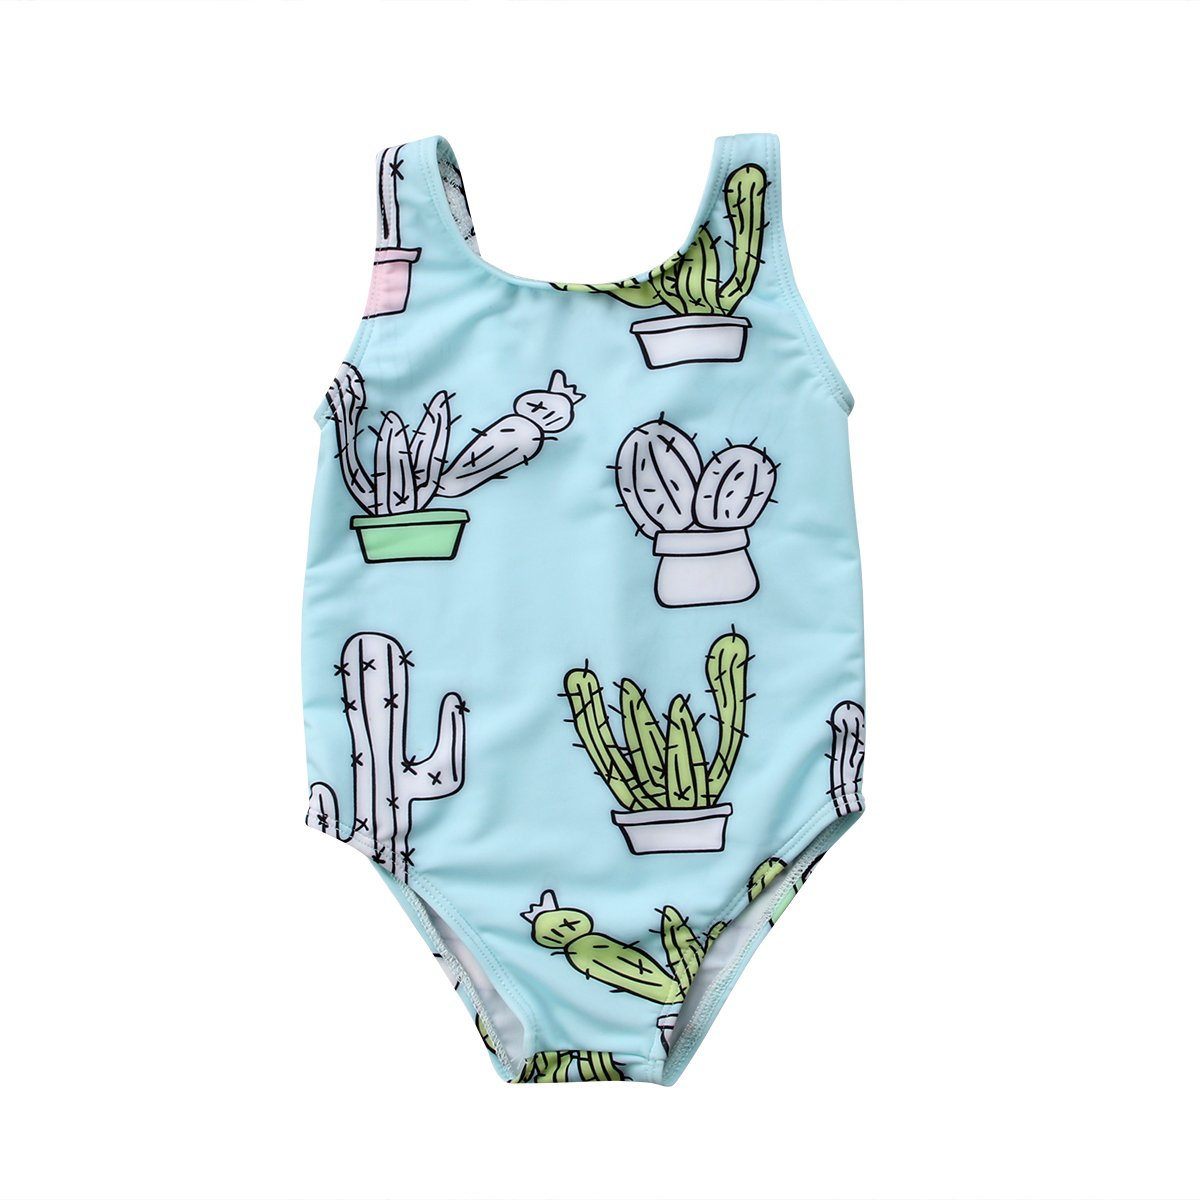 fa52eb9dcfdbc Amazon.com: ITFABS Newborn Baby Girl Cactus Swimsuit Bathing Suit Bikini  Mommy Girls Matching Swimwear Beach Wear: Clothing